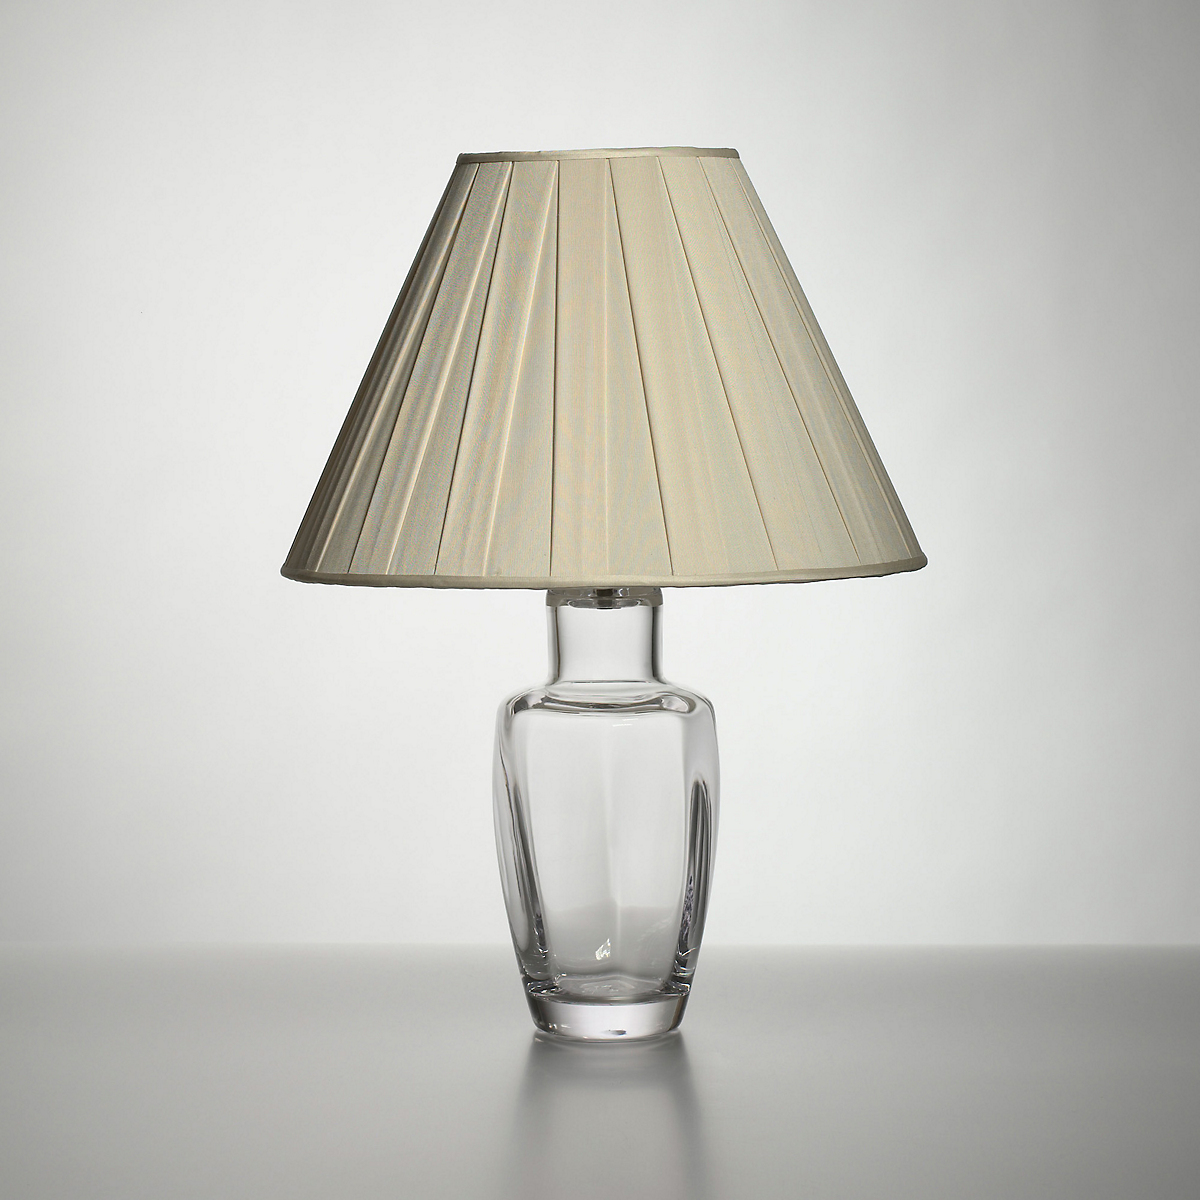 Simon Pearce Fairlee Table Lamp, Small